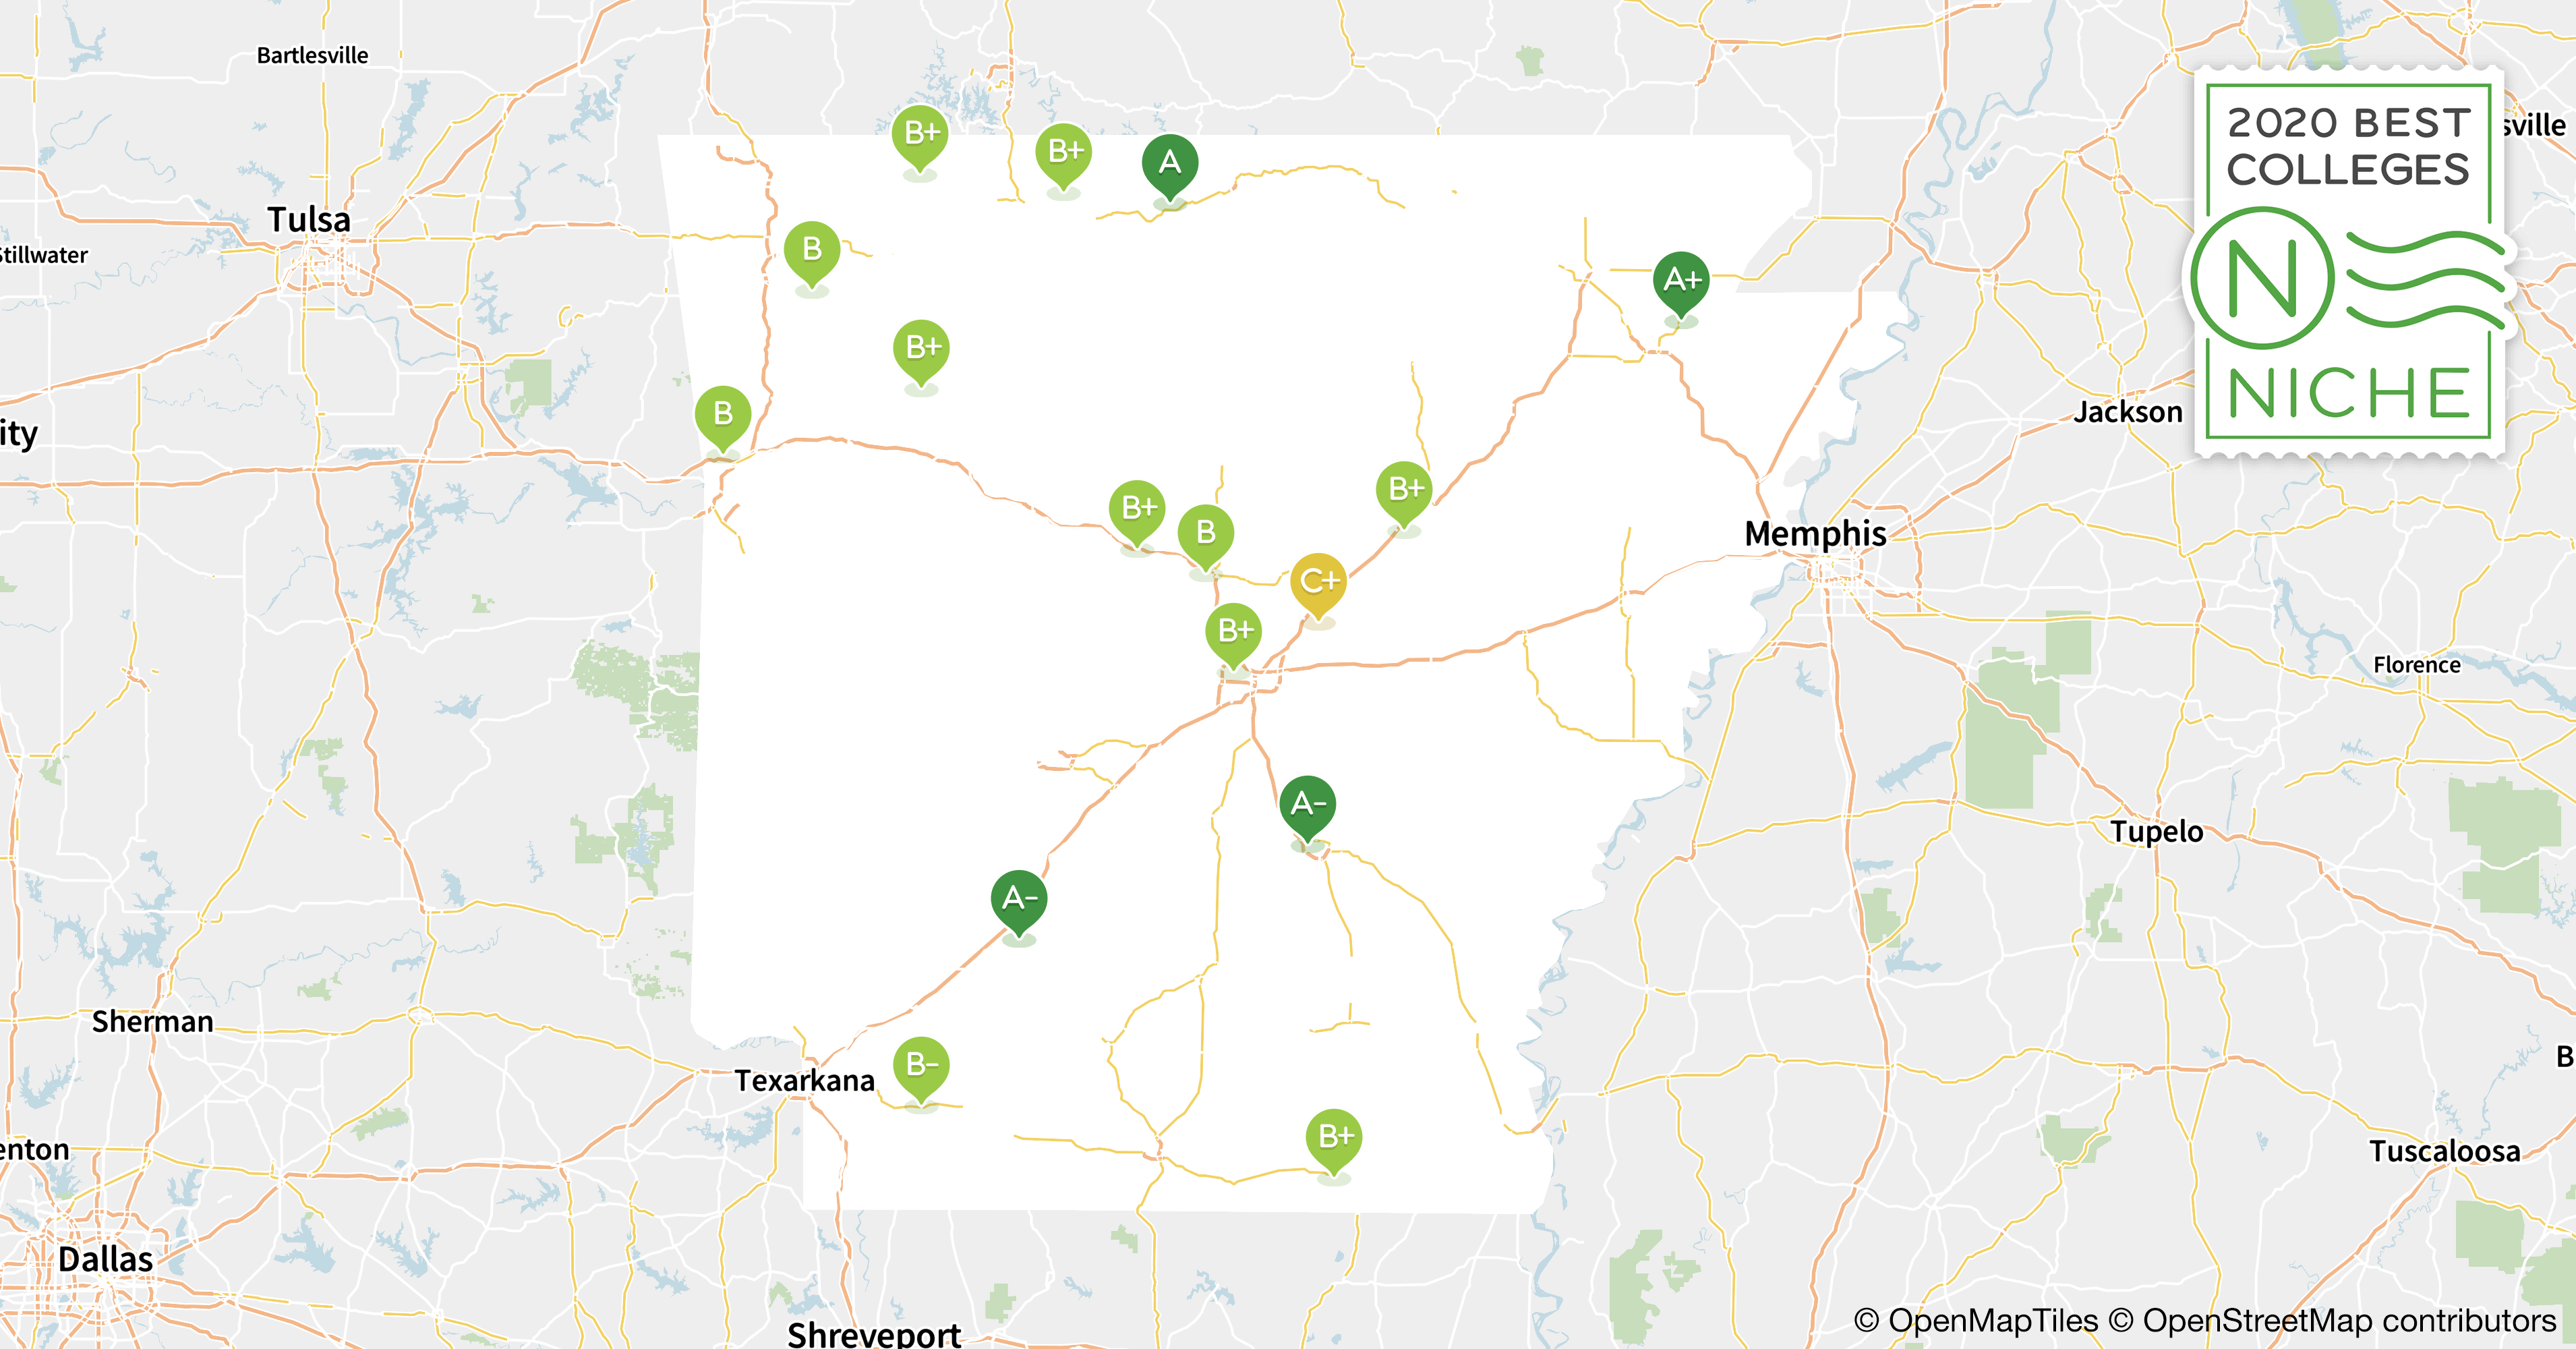 map of colleges in arkansas 2020 Best Colleges In Arkansas Niche map of colleges in arkansas